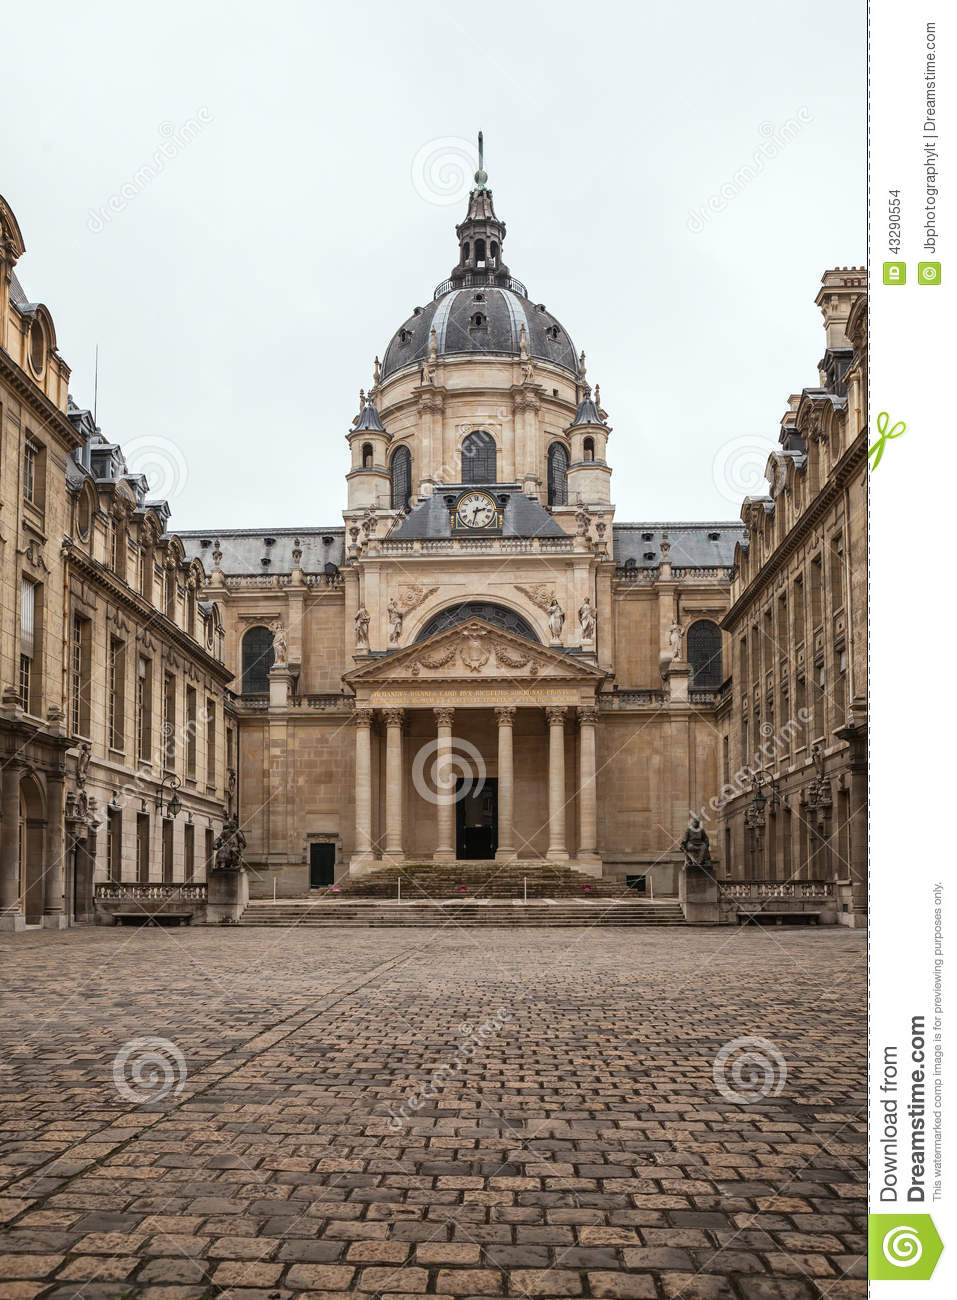 Sorbonne editorial stock image image of outdoor paris for Sorbonne paris